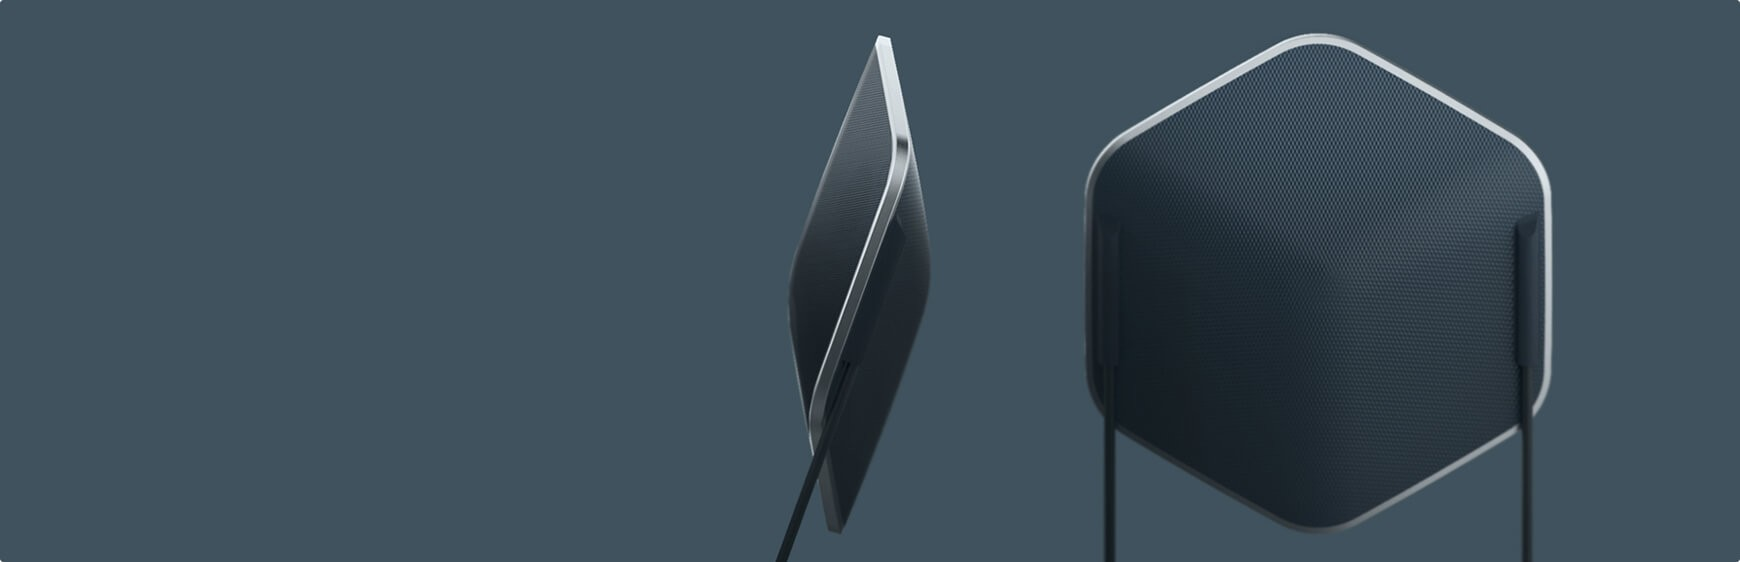 Concept Beoplay 60